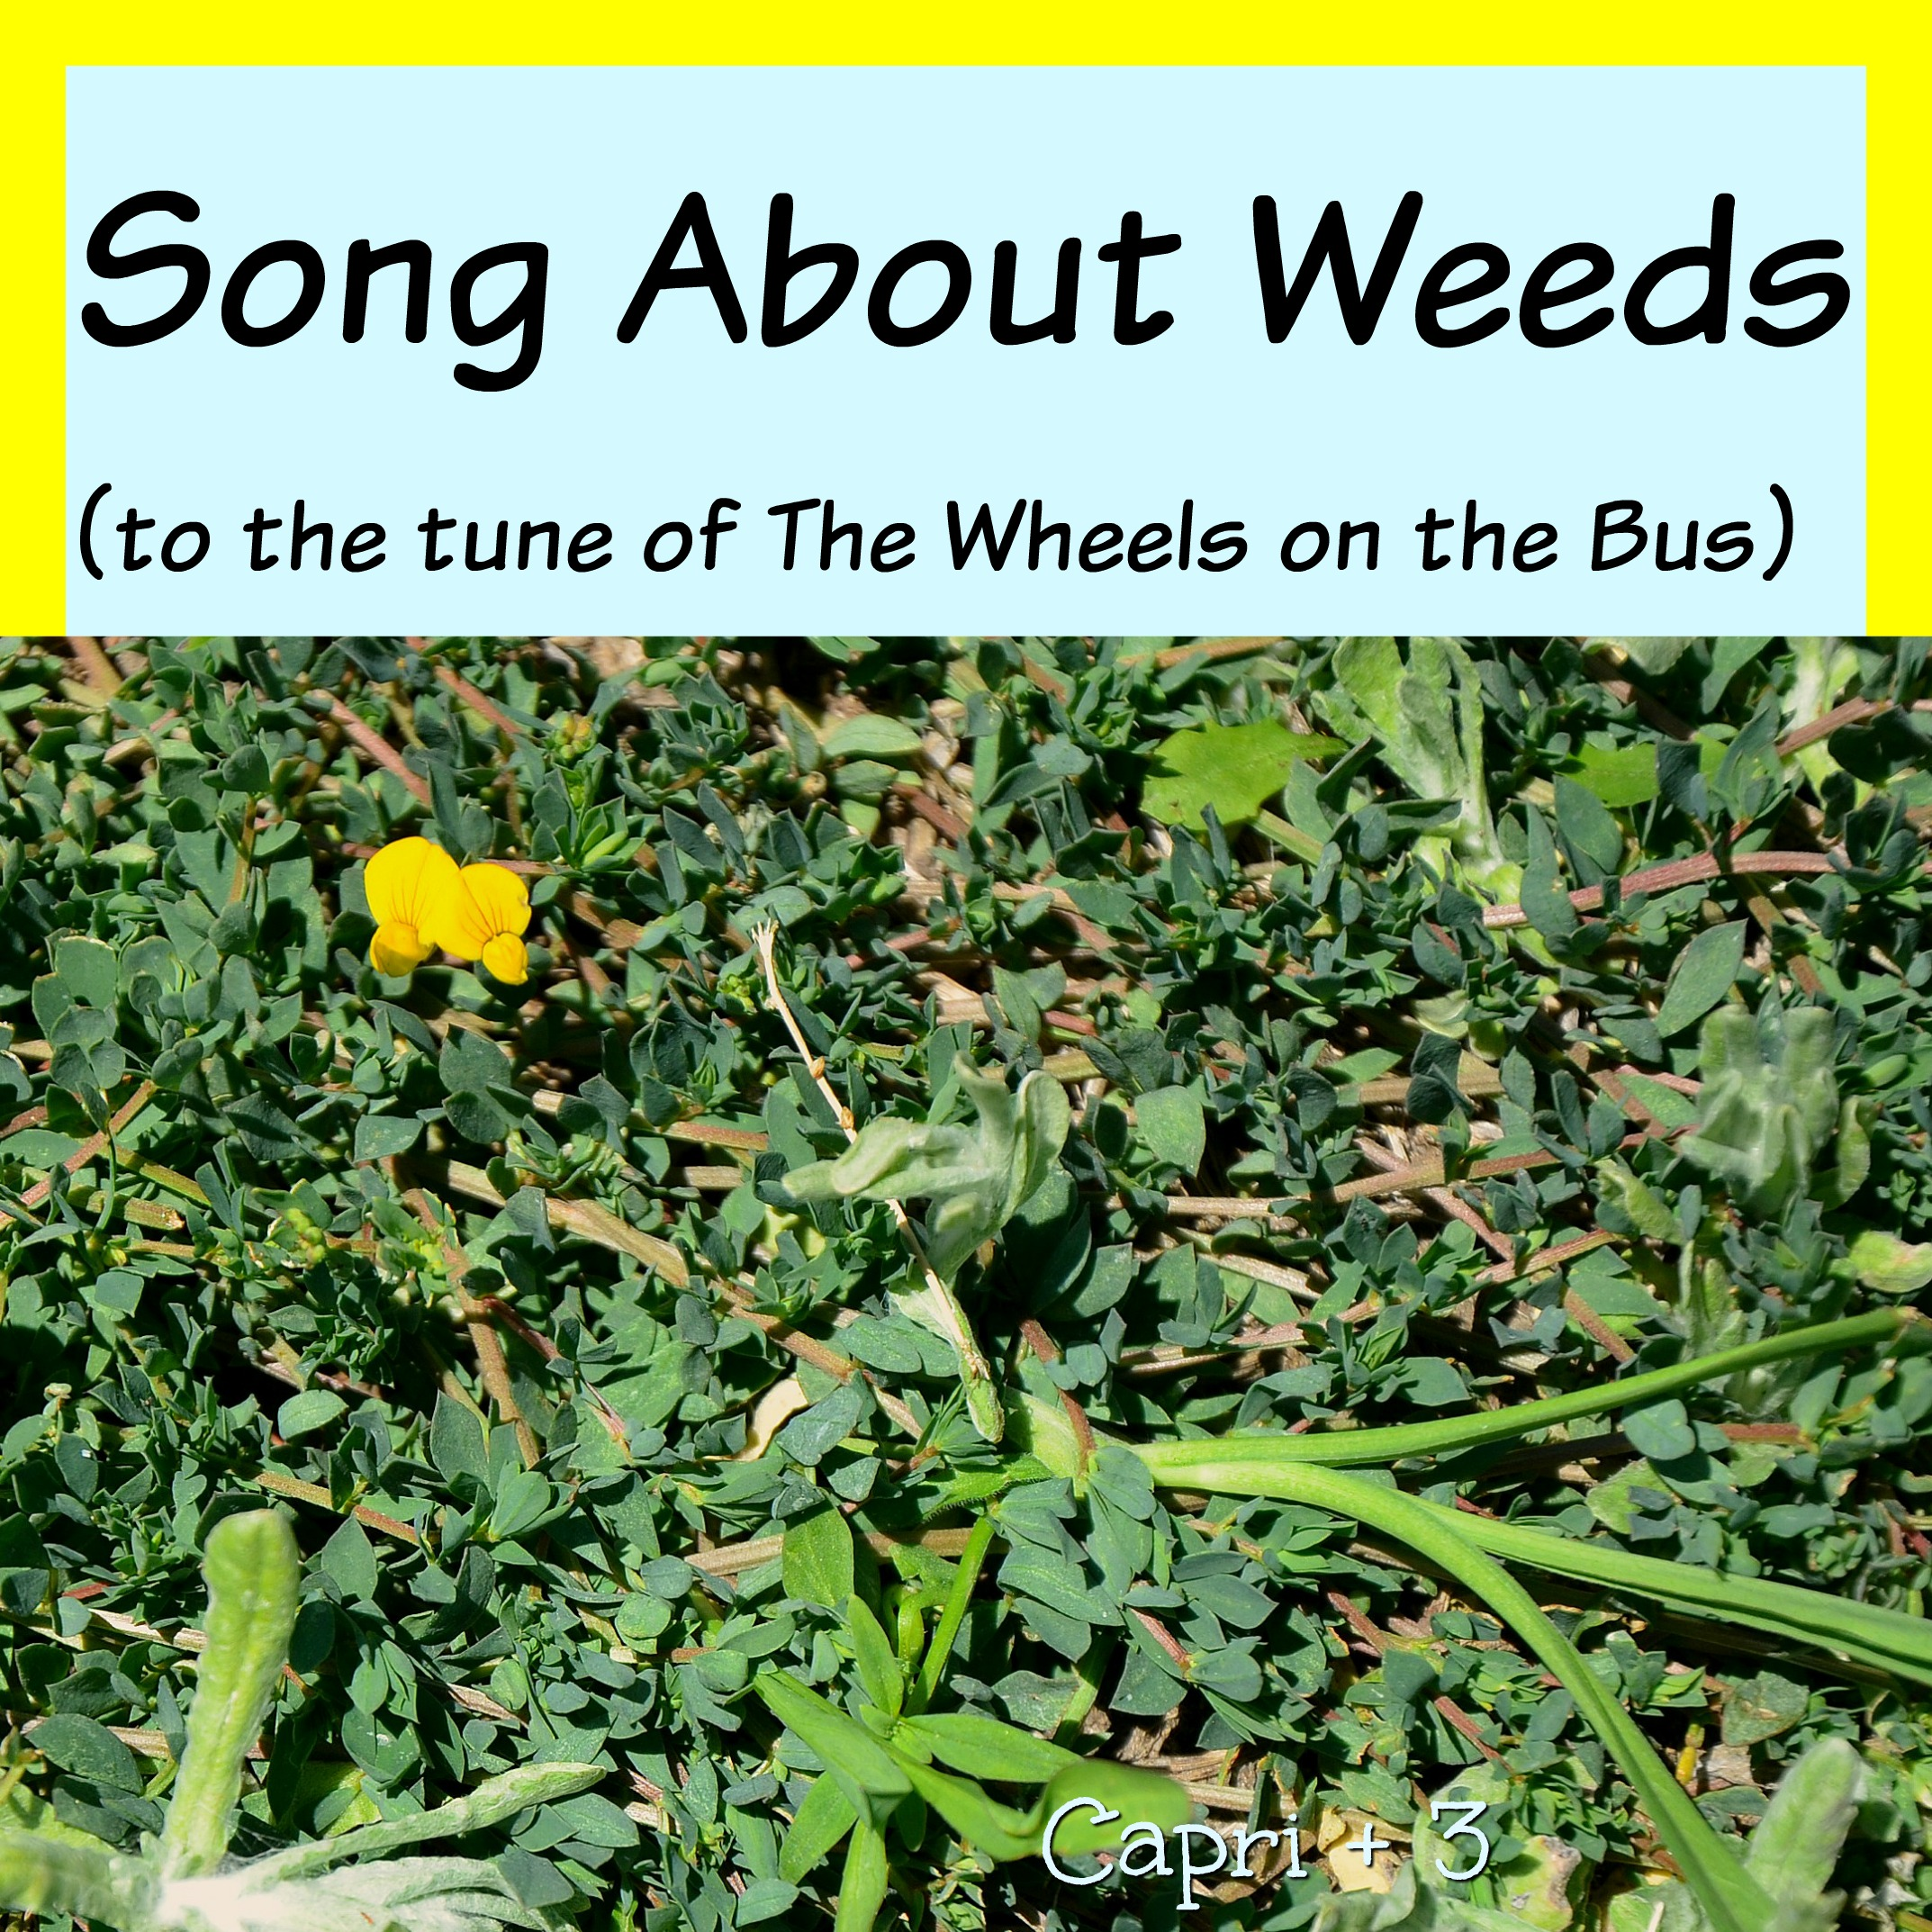 Song About Weeds-to the tune of The Wheels on the Bus